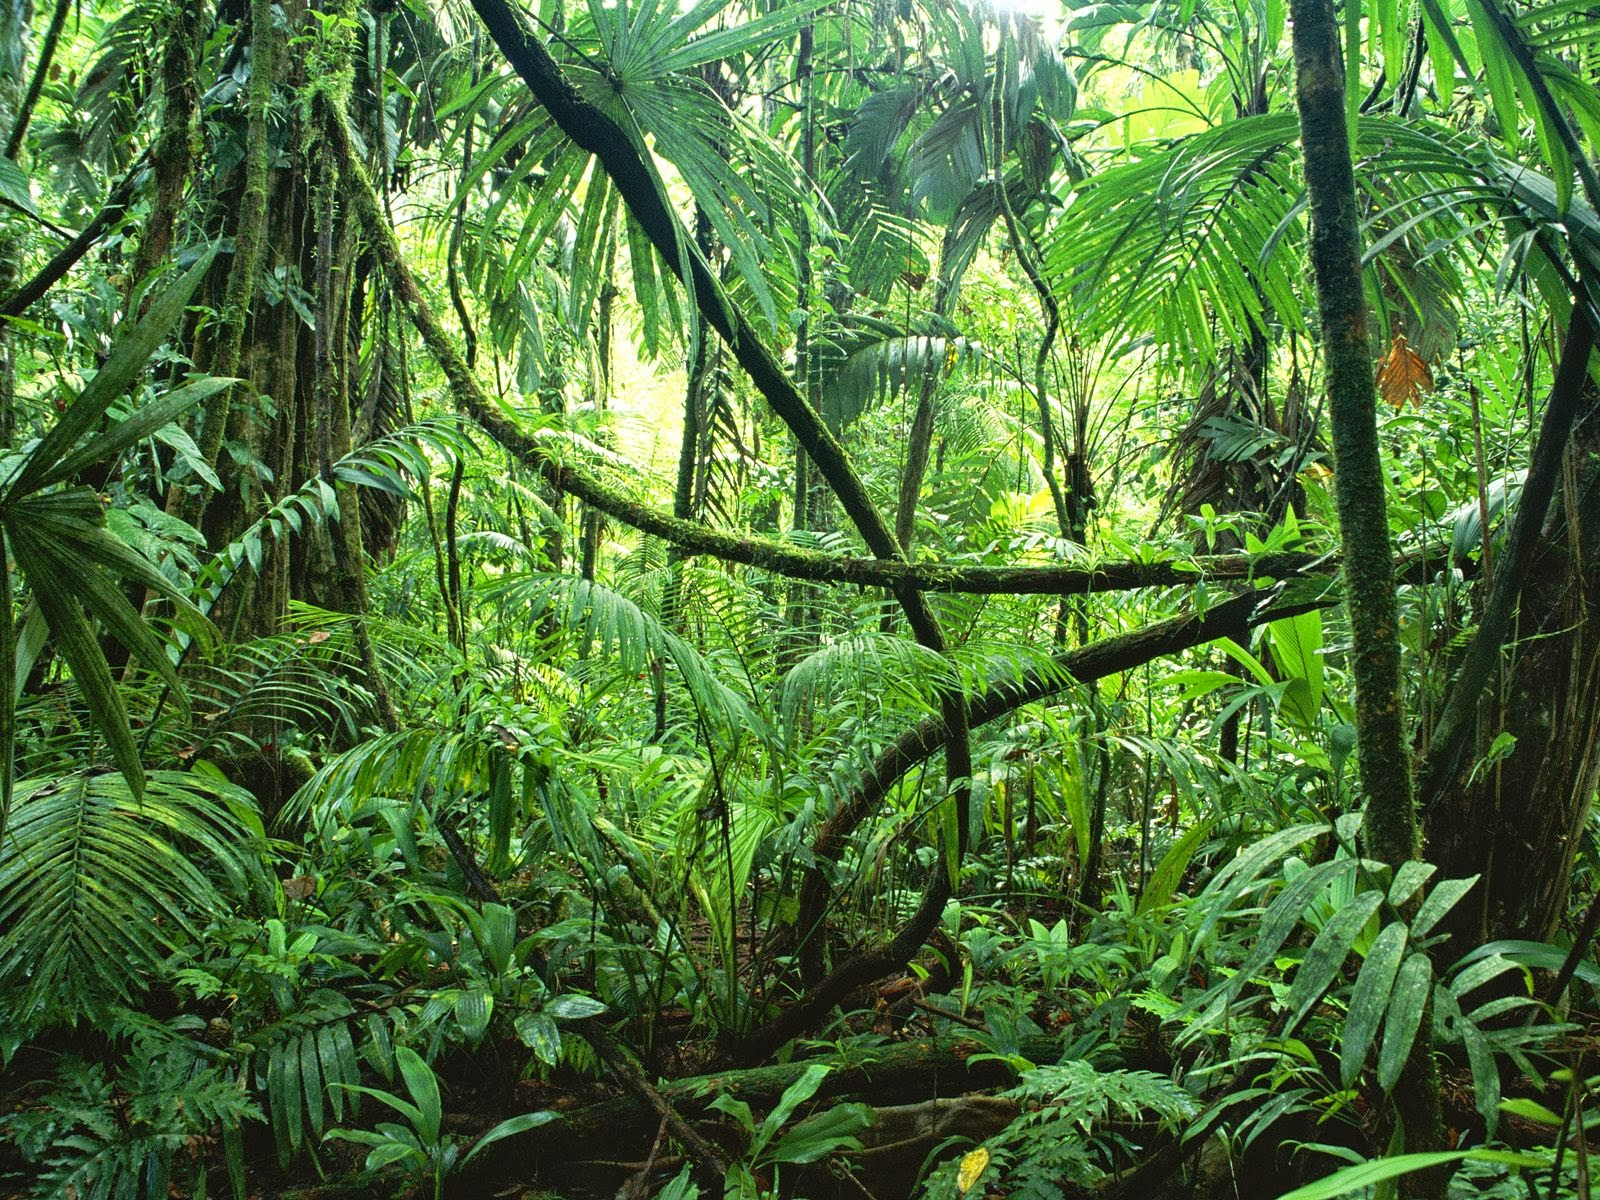 Tropical Rainforests - Green Plants On The EarthTropical Rainforest Sunlight